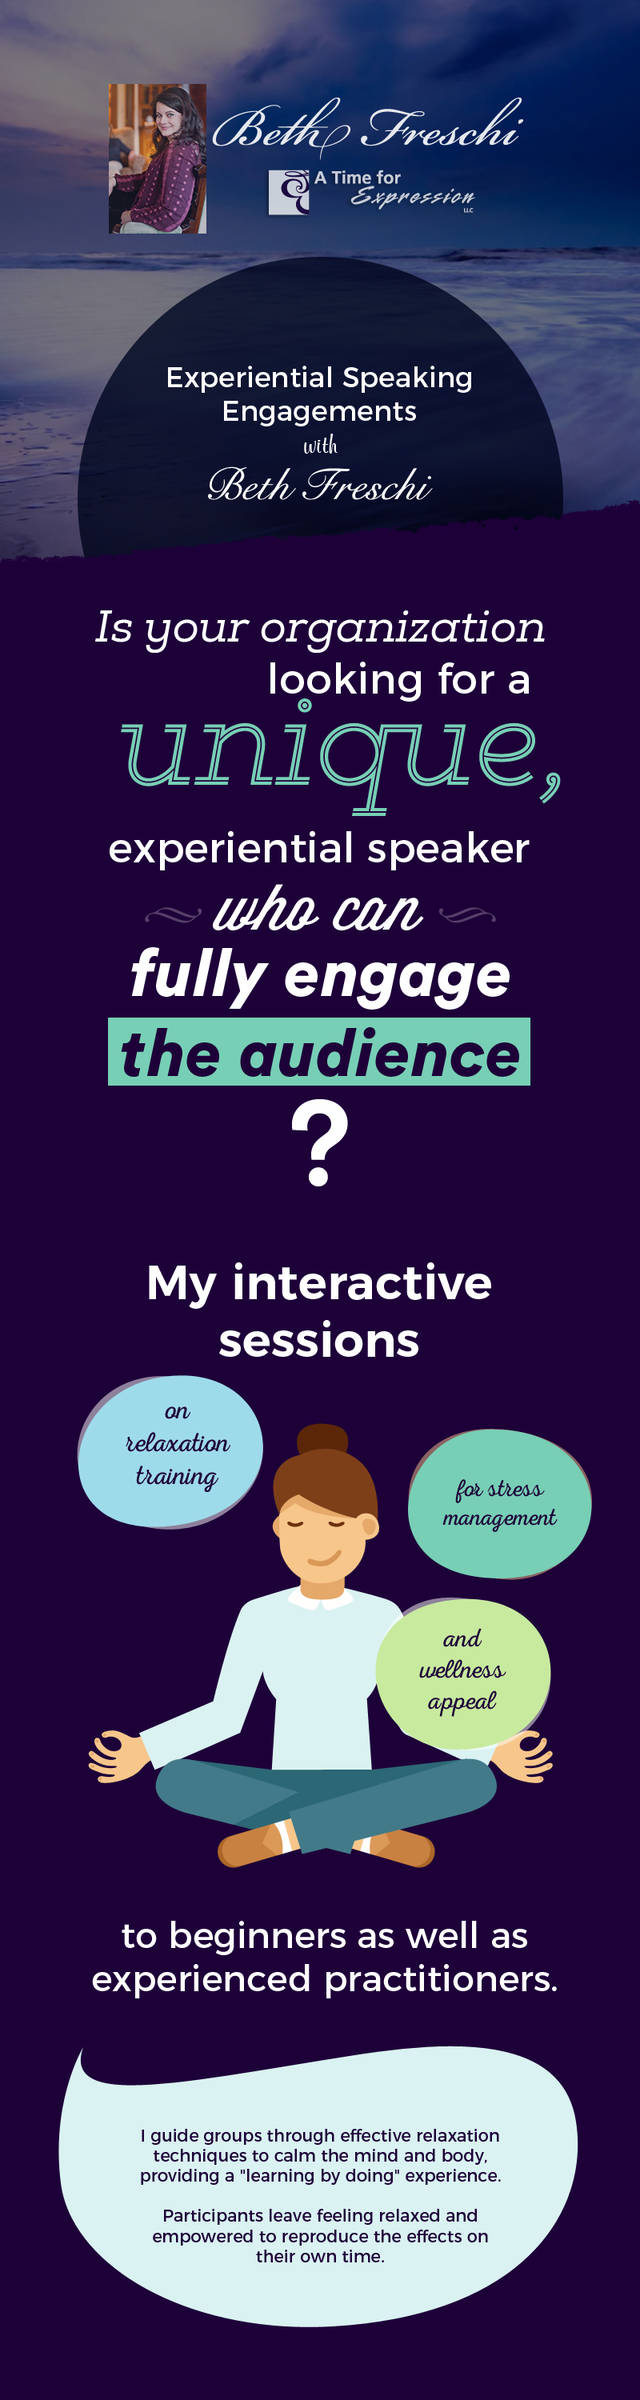 Join speaking engagements sessions at a time for expression  llc